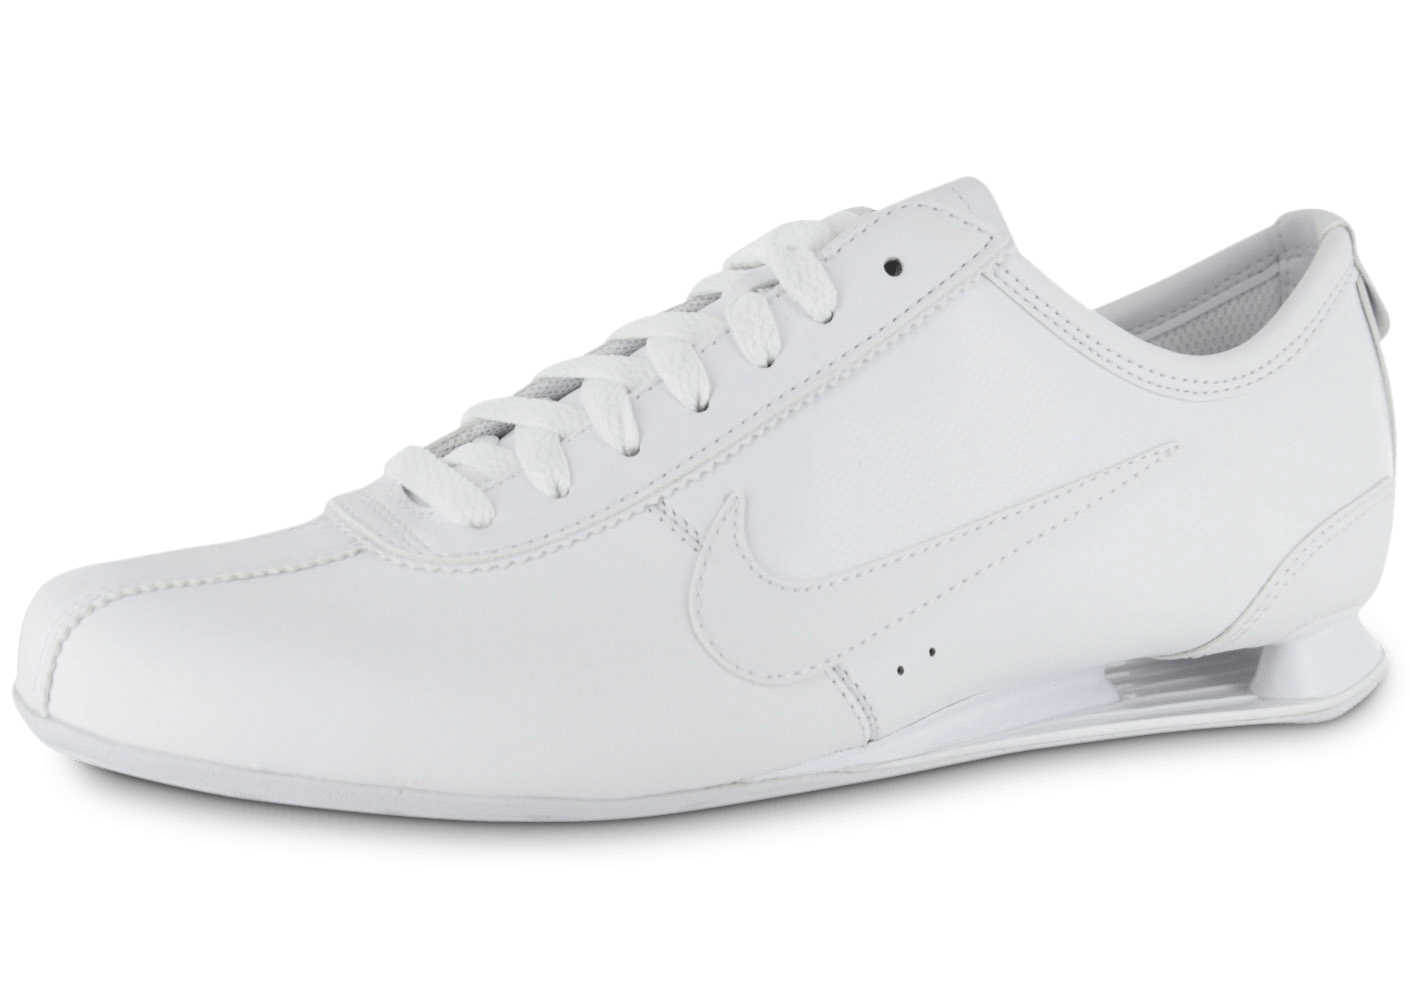 nike shox rivalry blanche chaussures homme chausport. Black Bedroom Furniture Sets. Home Design Ideas